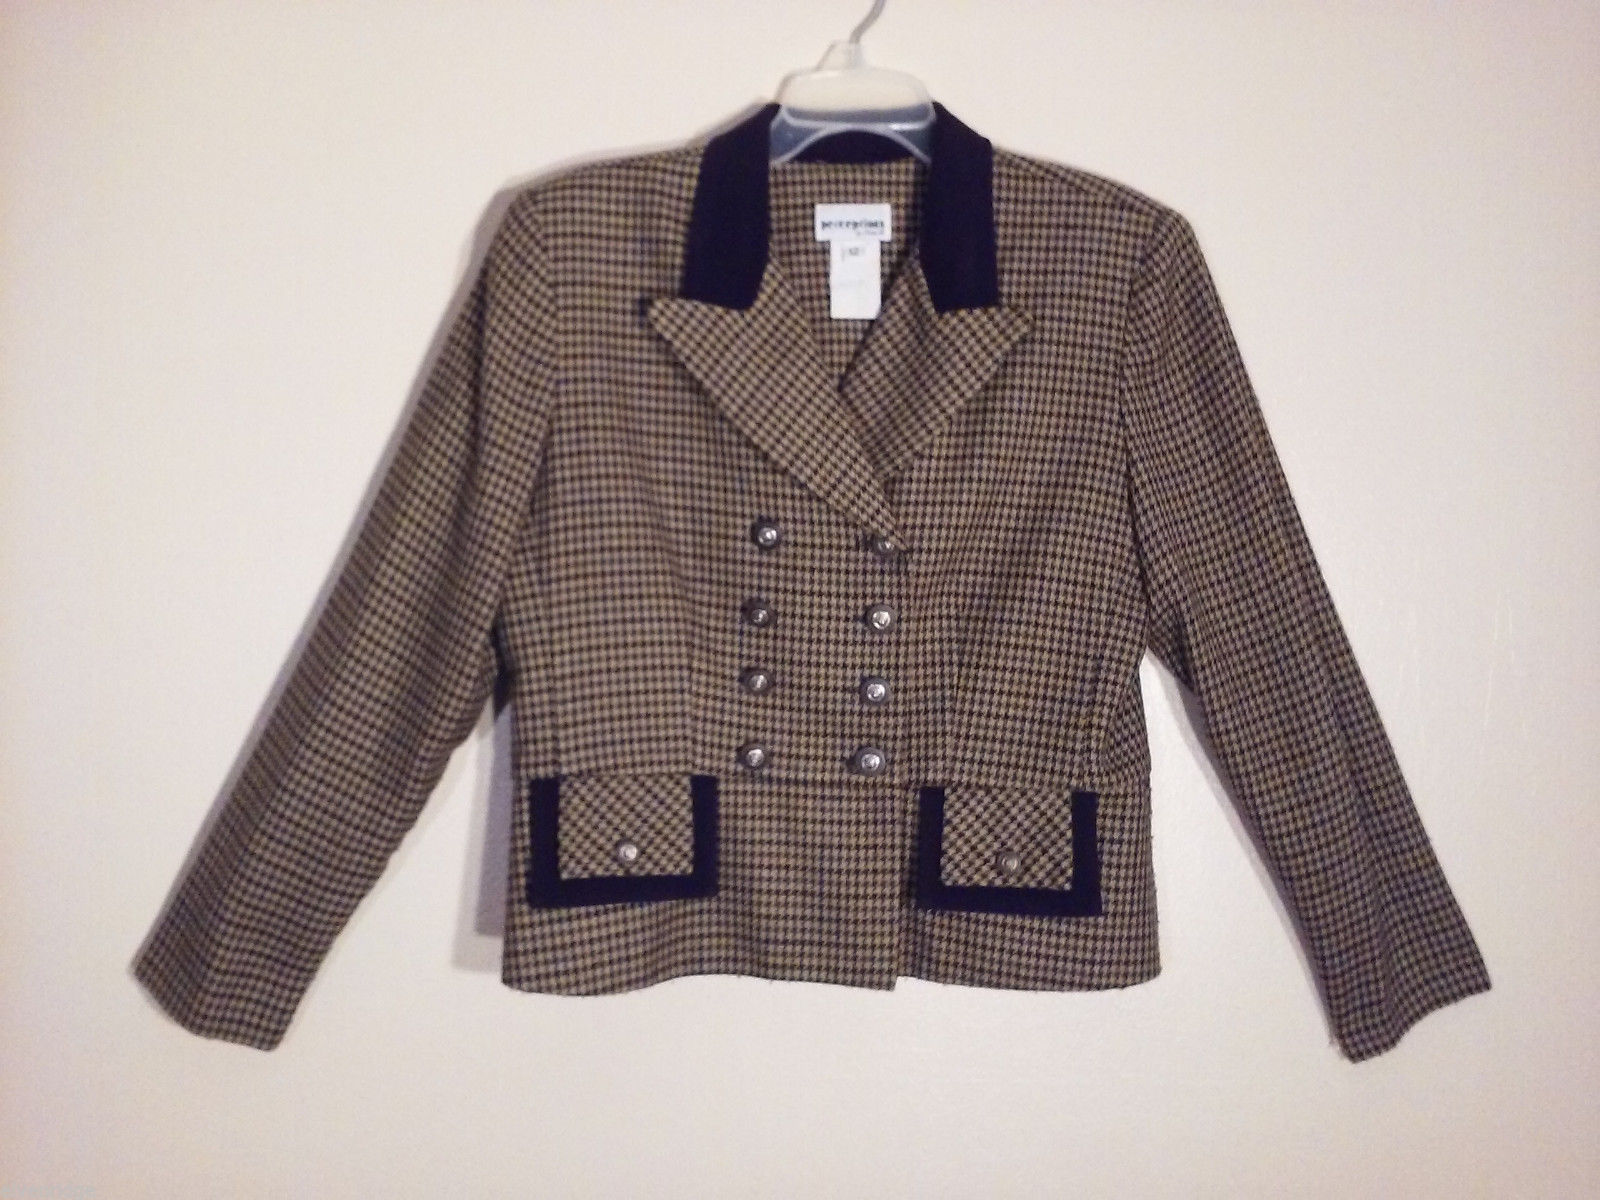 Perceptions by Irene B. Women's Size 12 Retro Blazer Double-Breasted Houndstooth